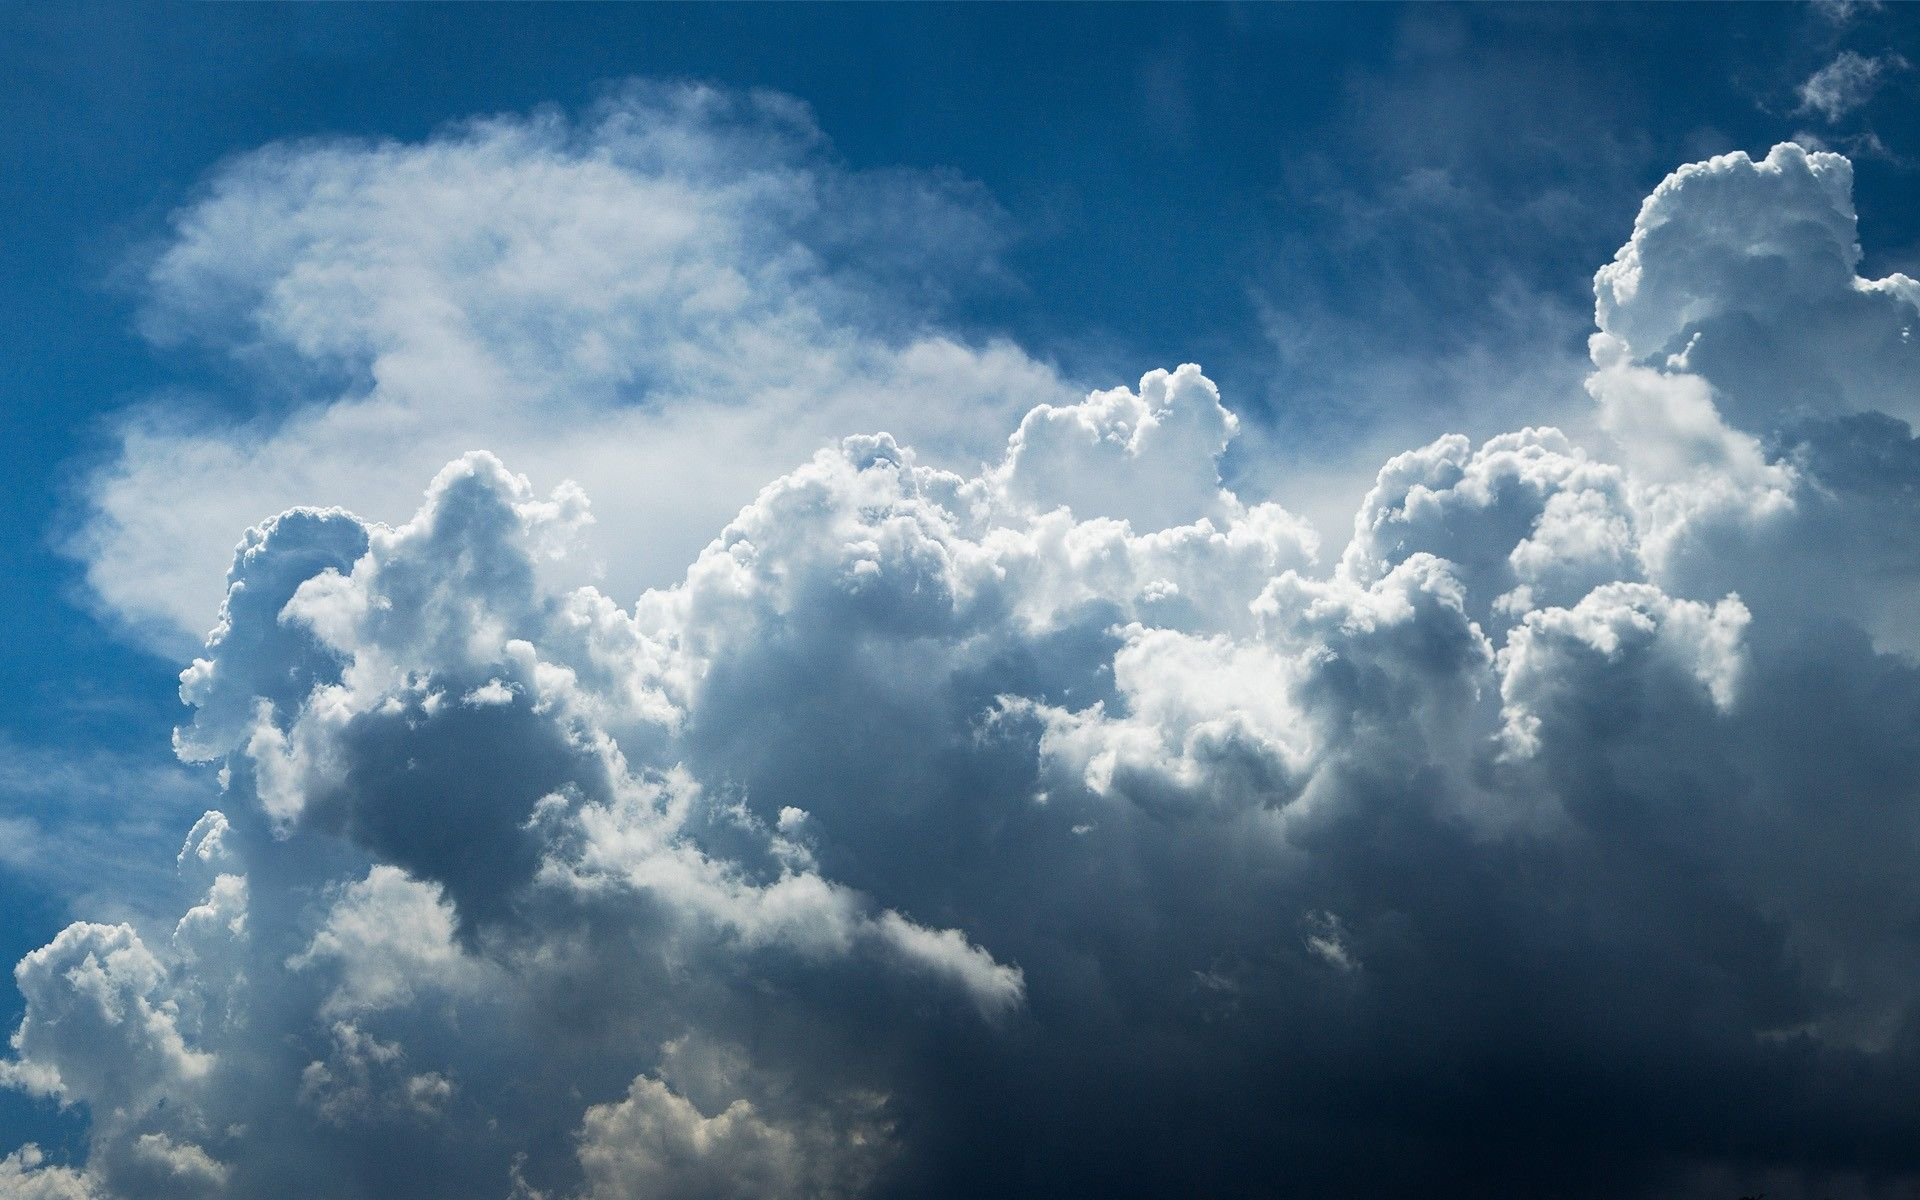 Cloud Wallpapers Hd Free Download For Painting Cloud